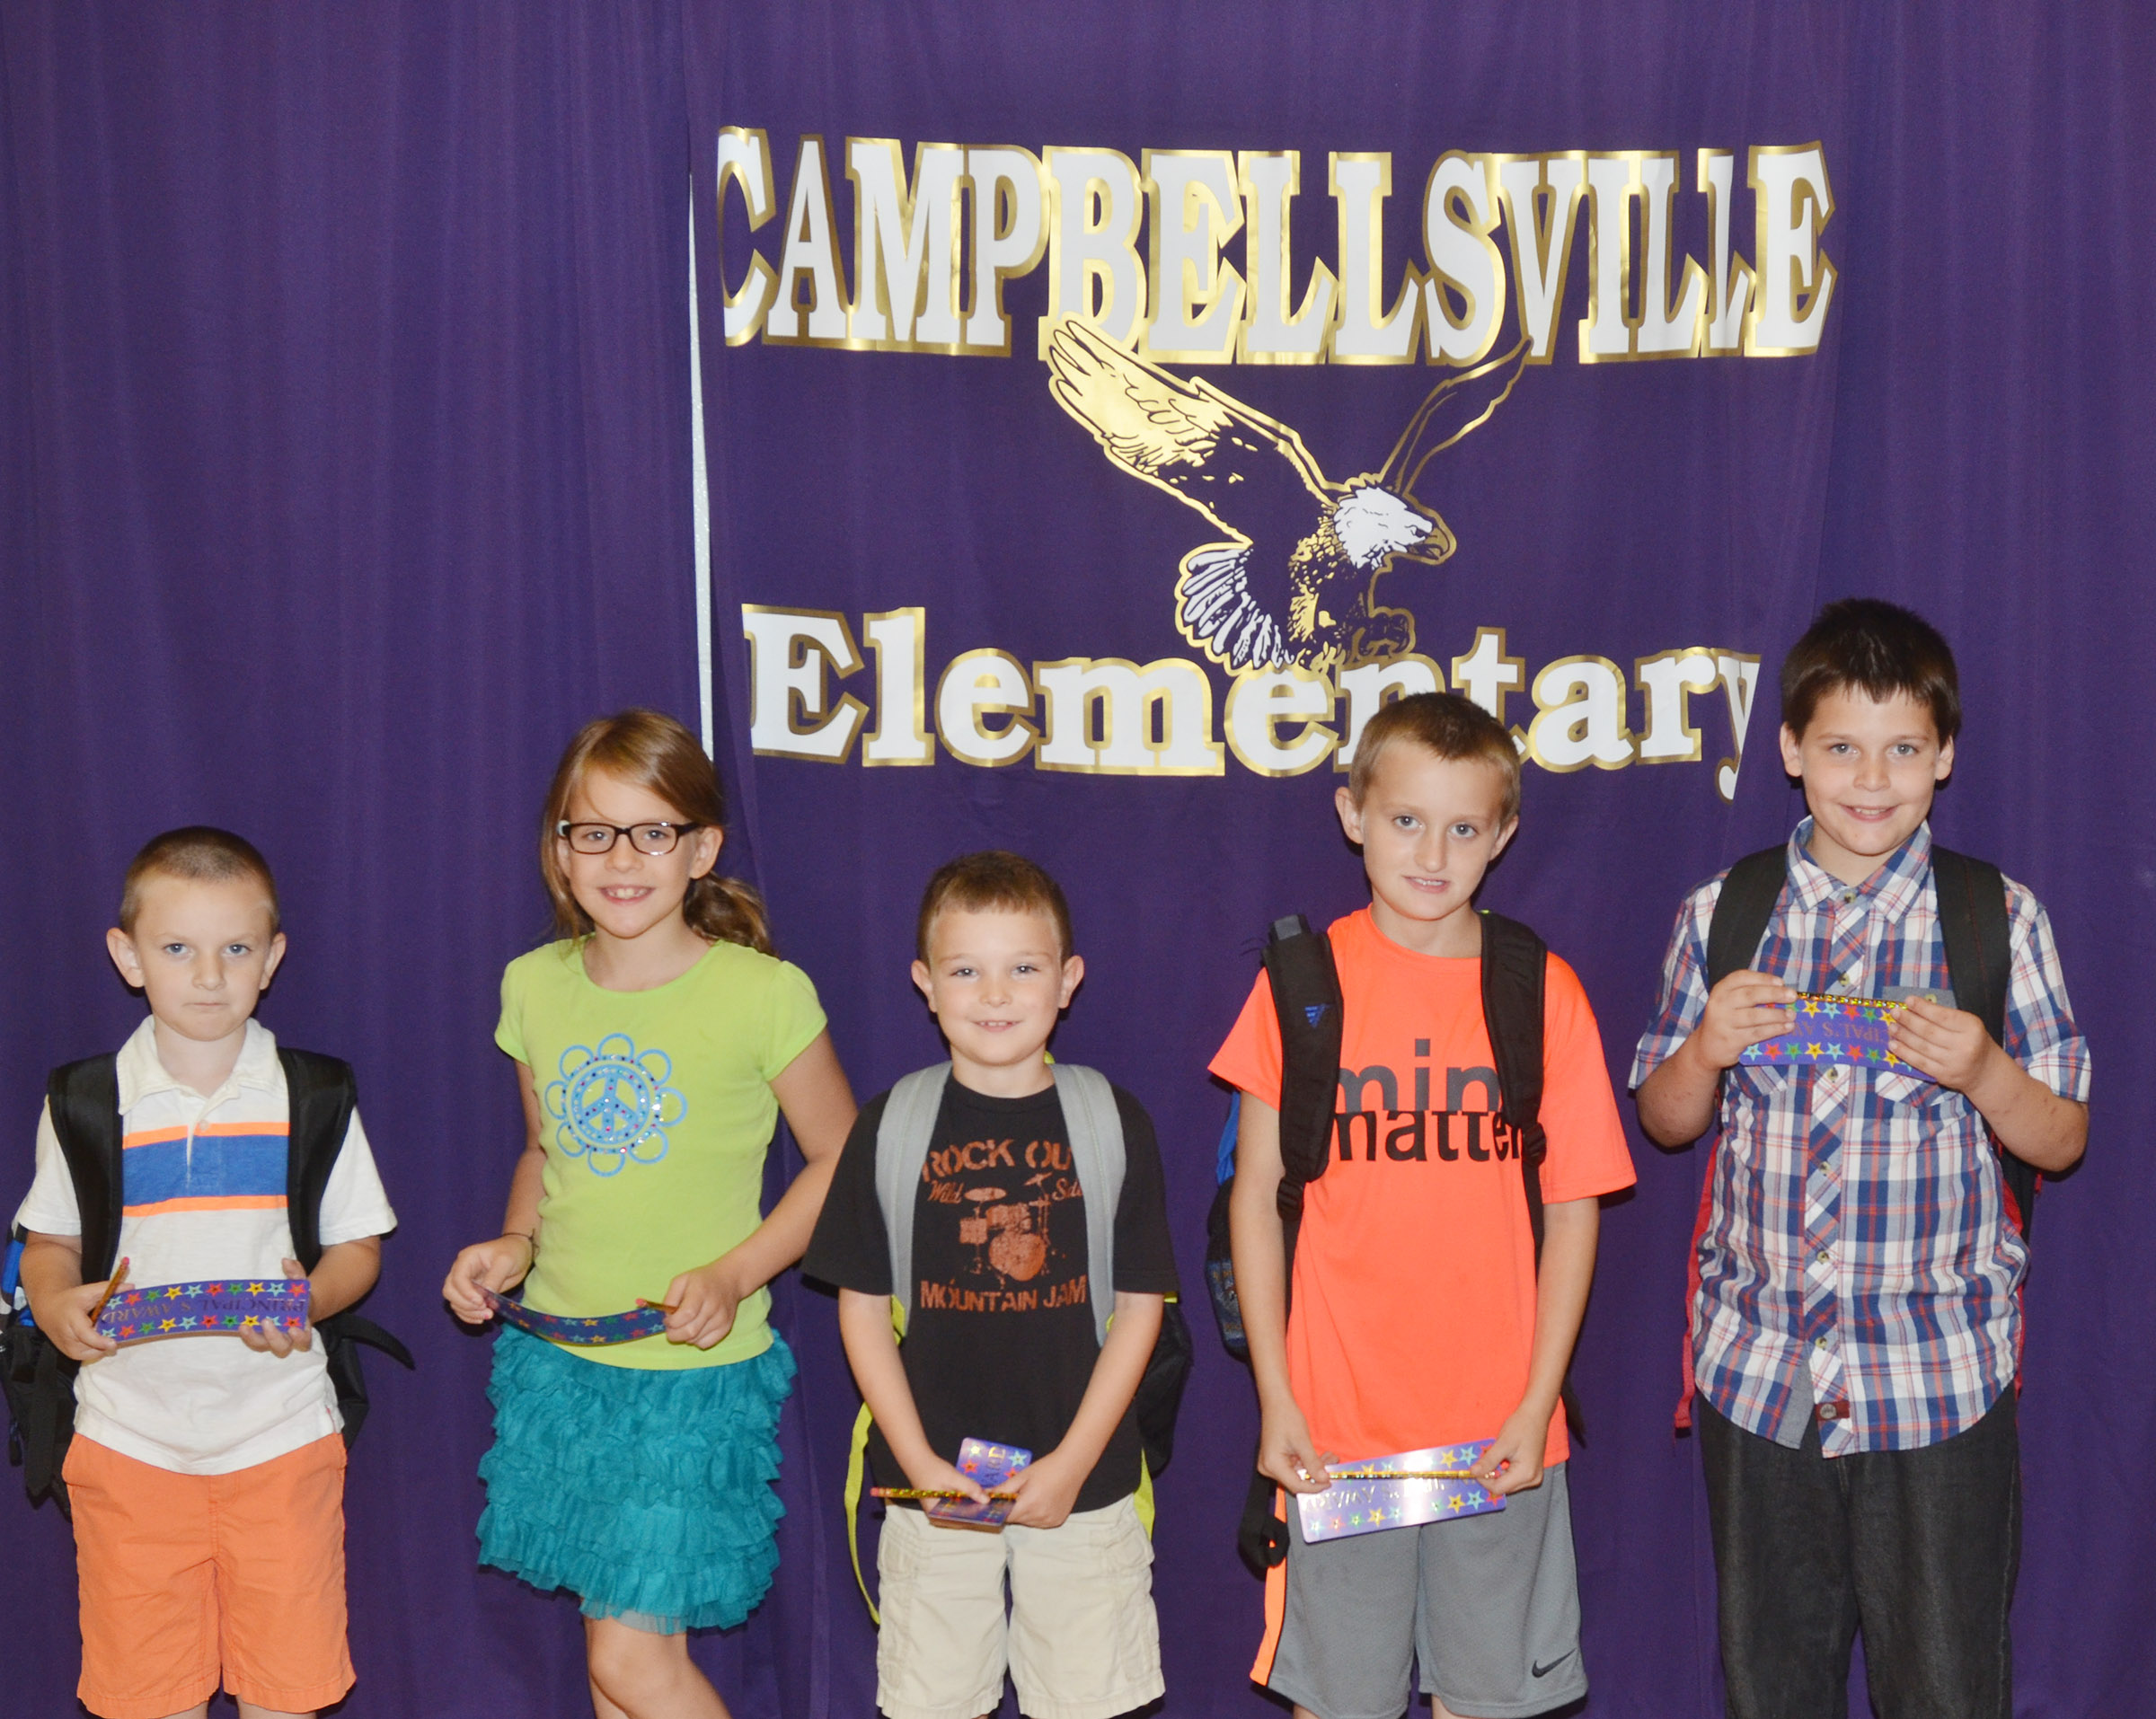 From left are first-grader Ryne Gumm, fifth-grader Ellie Wise, second-grader Karson Burchett, third-grader Zachary Cox and fourth-grader Chris Brown. Absent from the photo is kindergartener Trinity Dye.